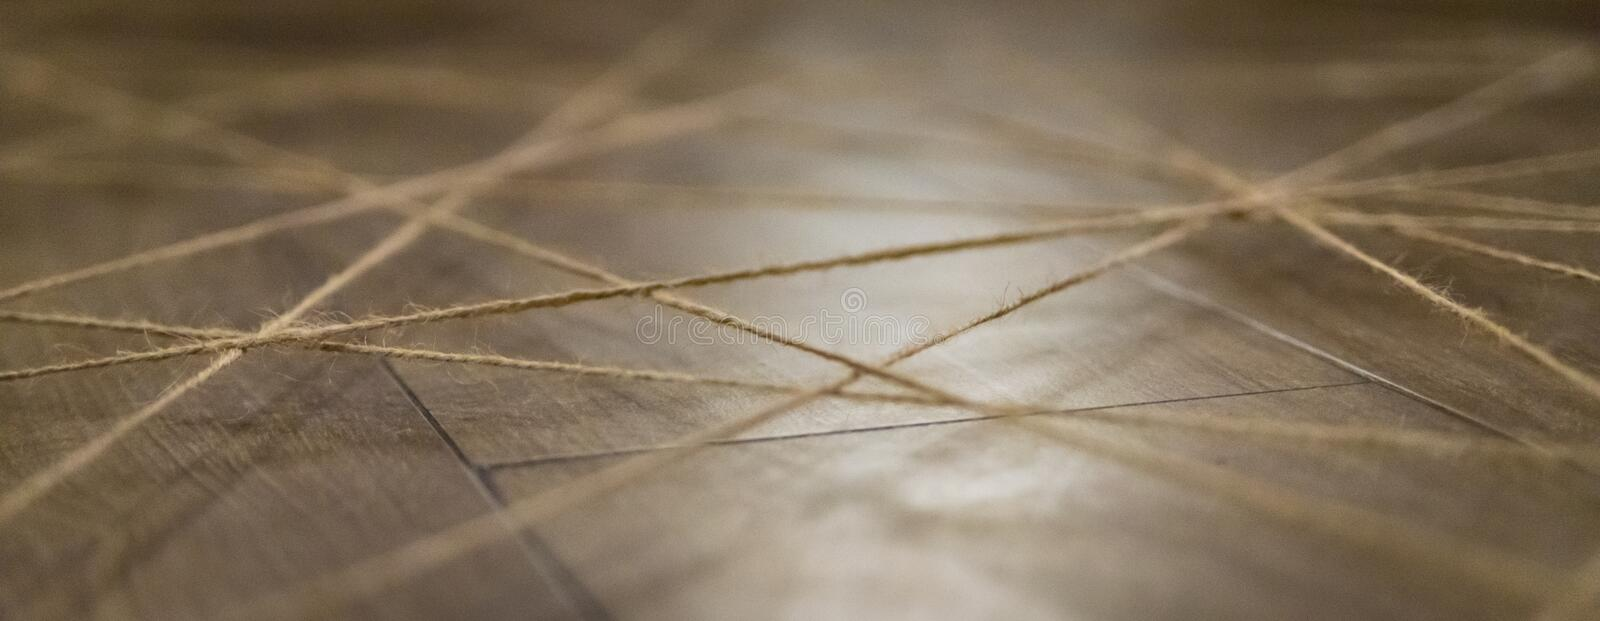 Abstract web background made of rope. Selective focus.  stock photography